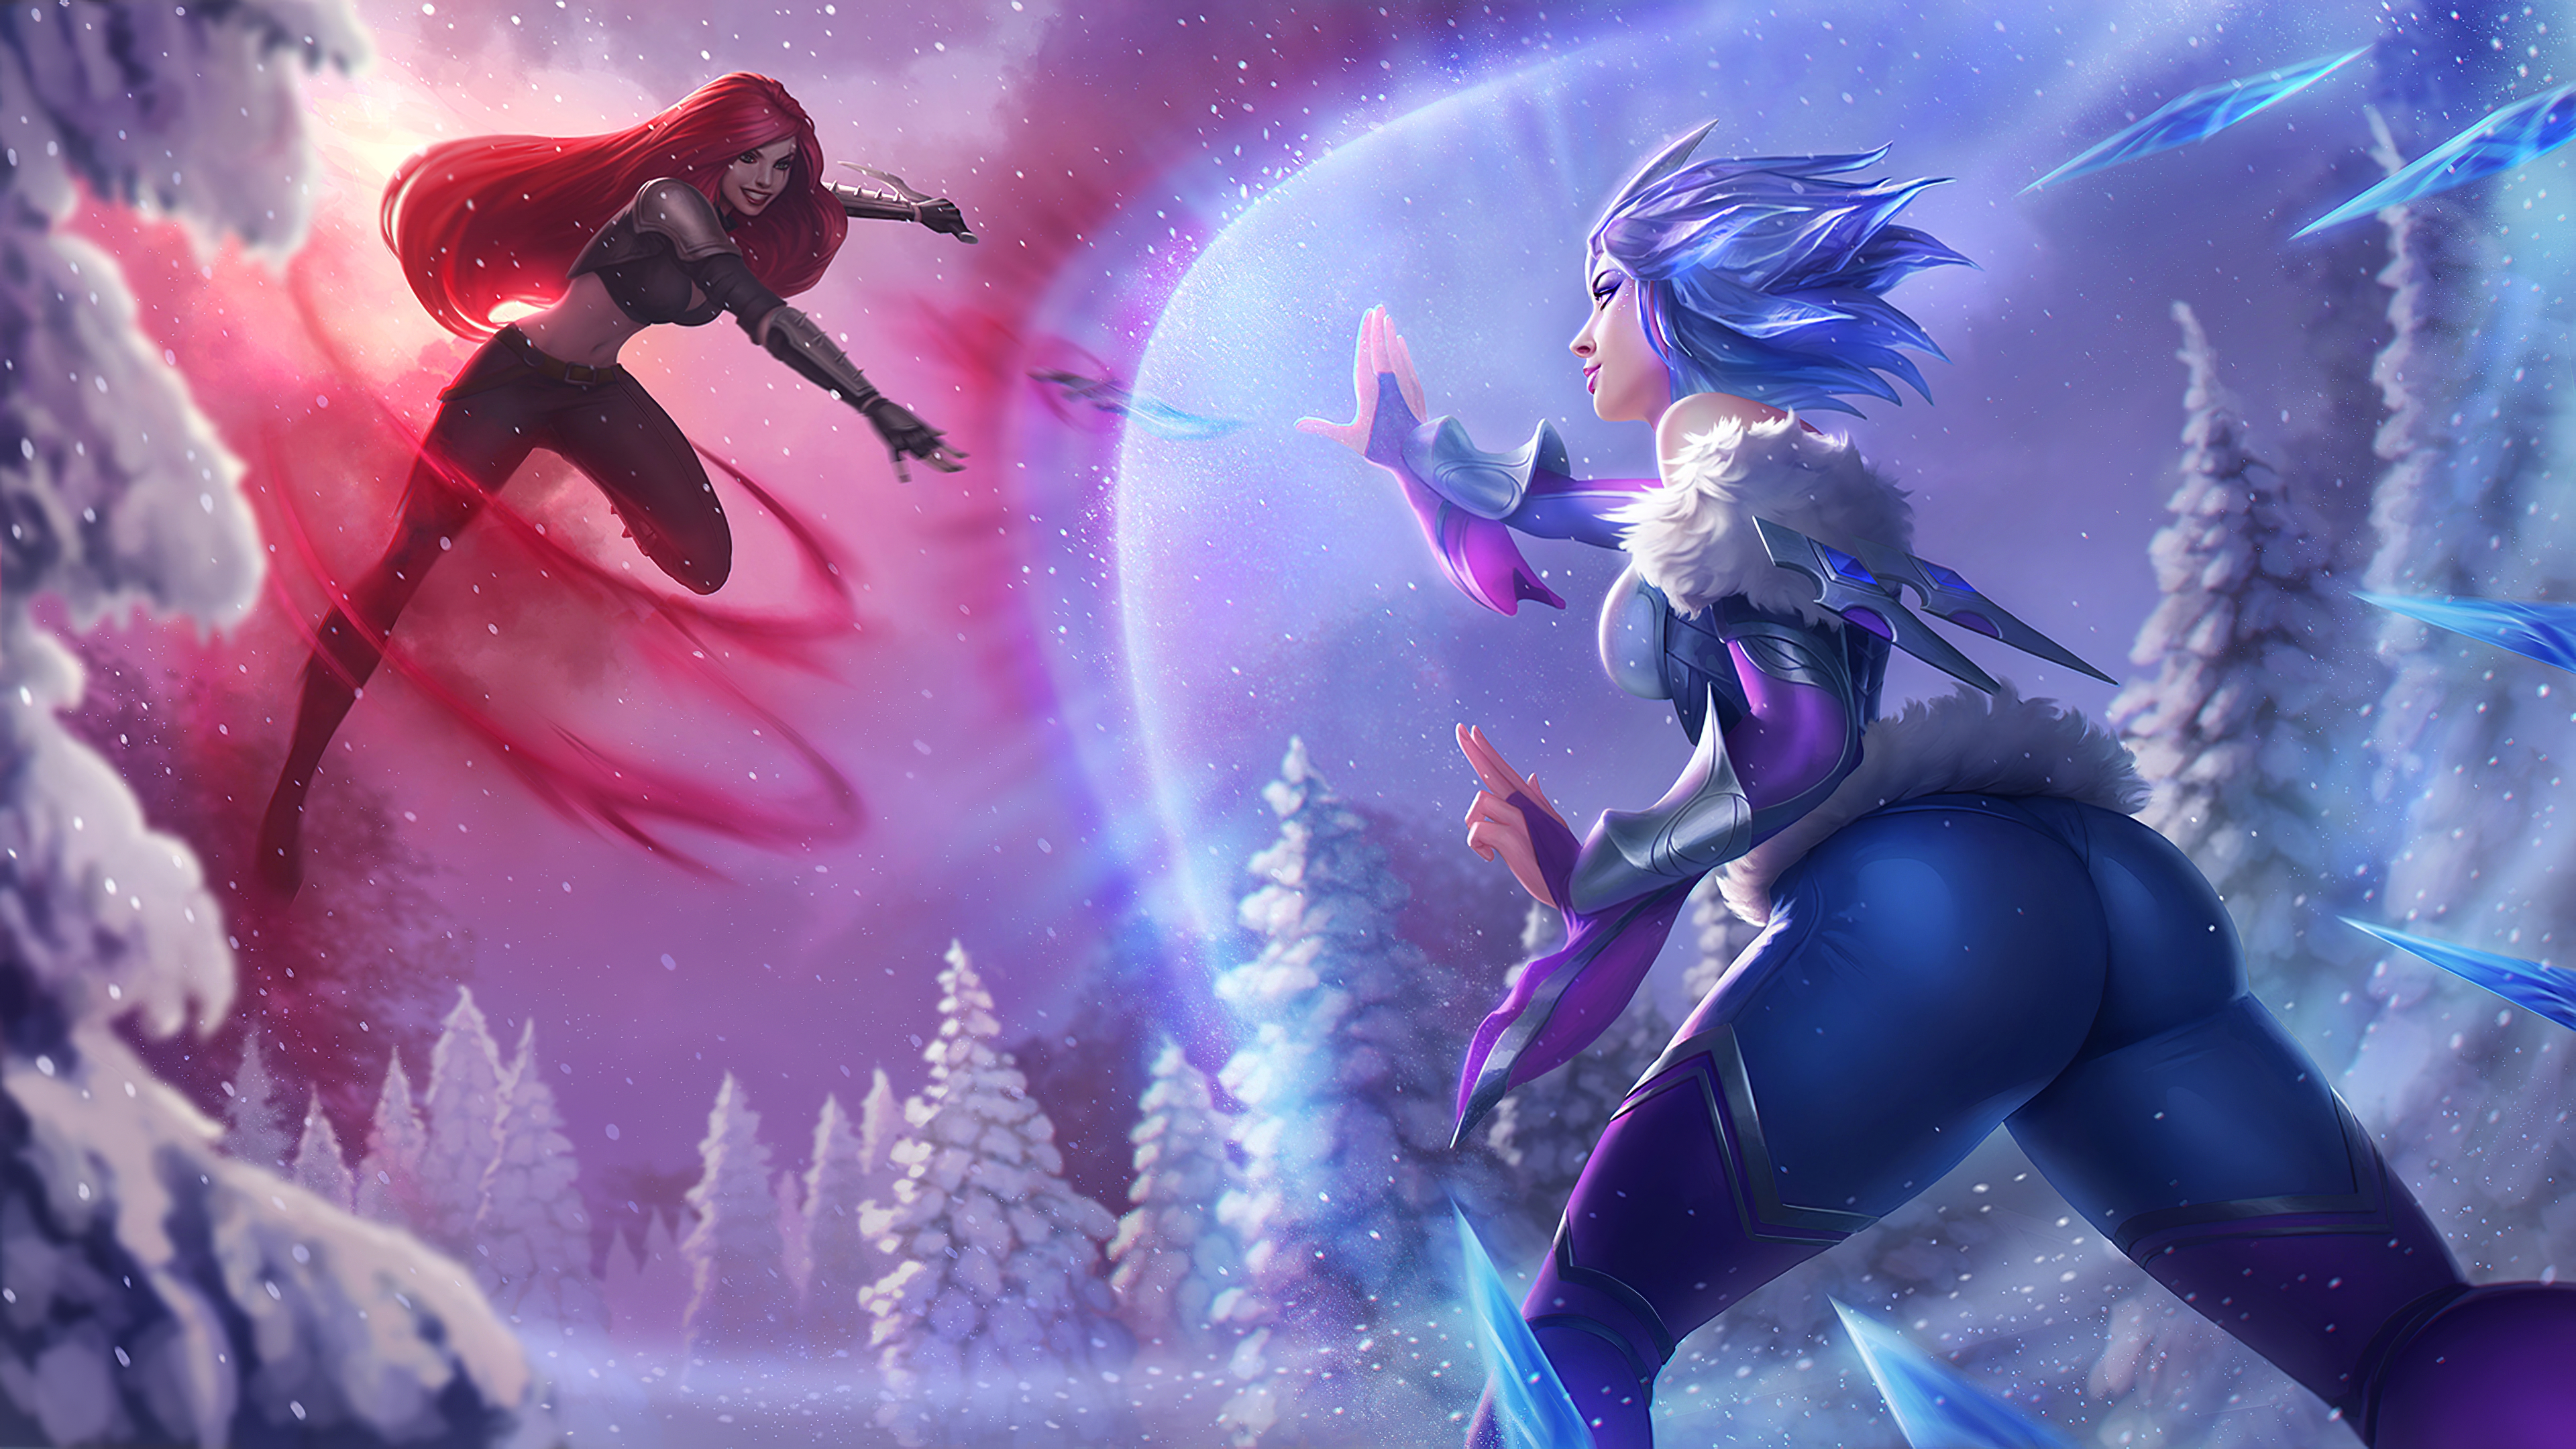 frostblade irelia vs katarina 1581273606 - Frostblade Irelia Vs Katarina - Frostblade Irelia Vs Katarina wallpapers, Frostblade Irelia Vs Katarina 4k wallpapers